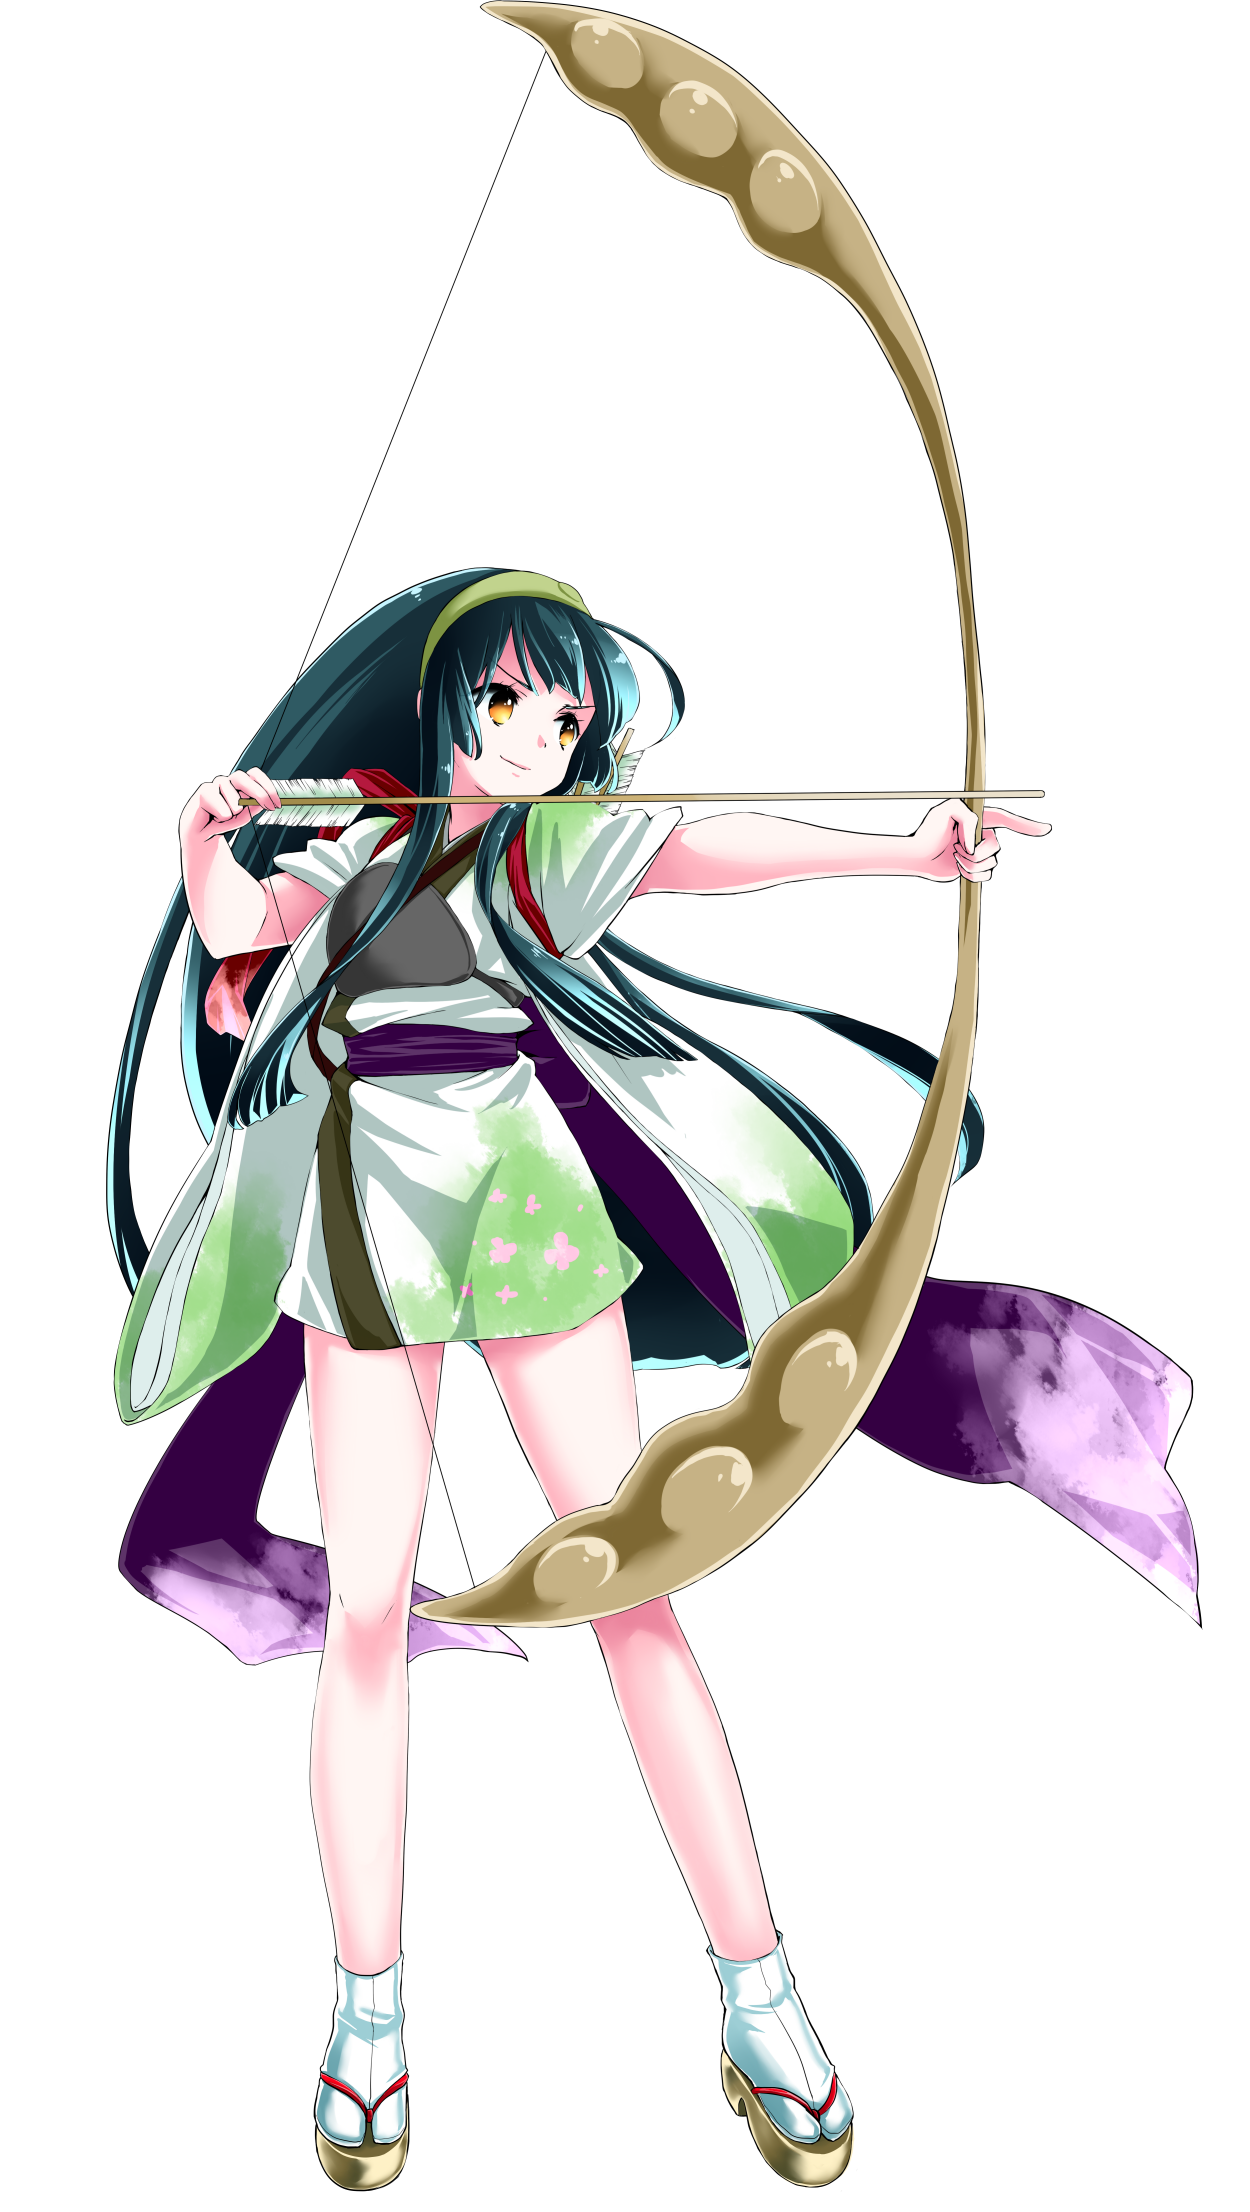 Archery Free Png Image PNG Image